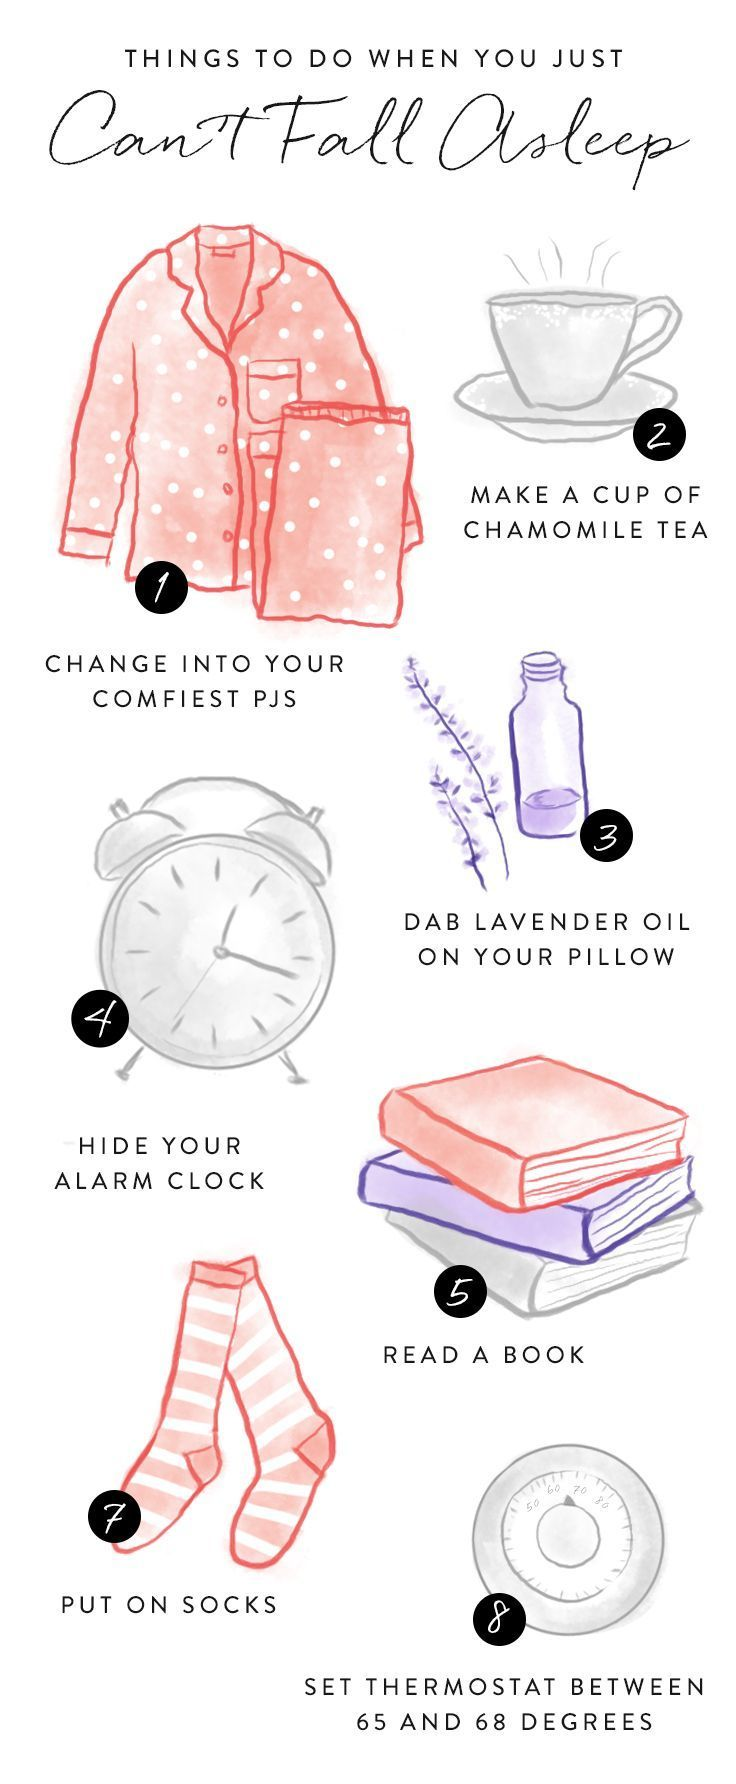 Try These Tactics When You Can't Fall Asleep To Induce Snoozing